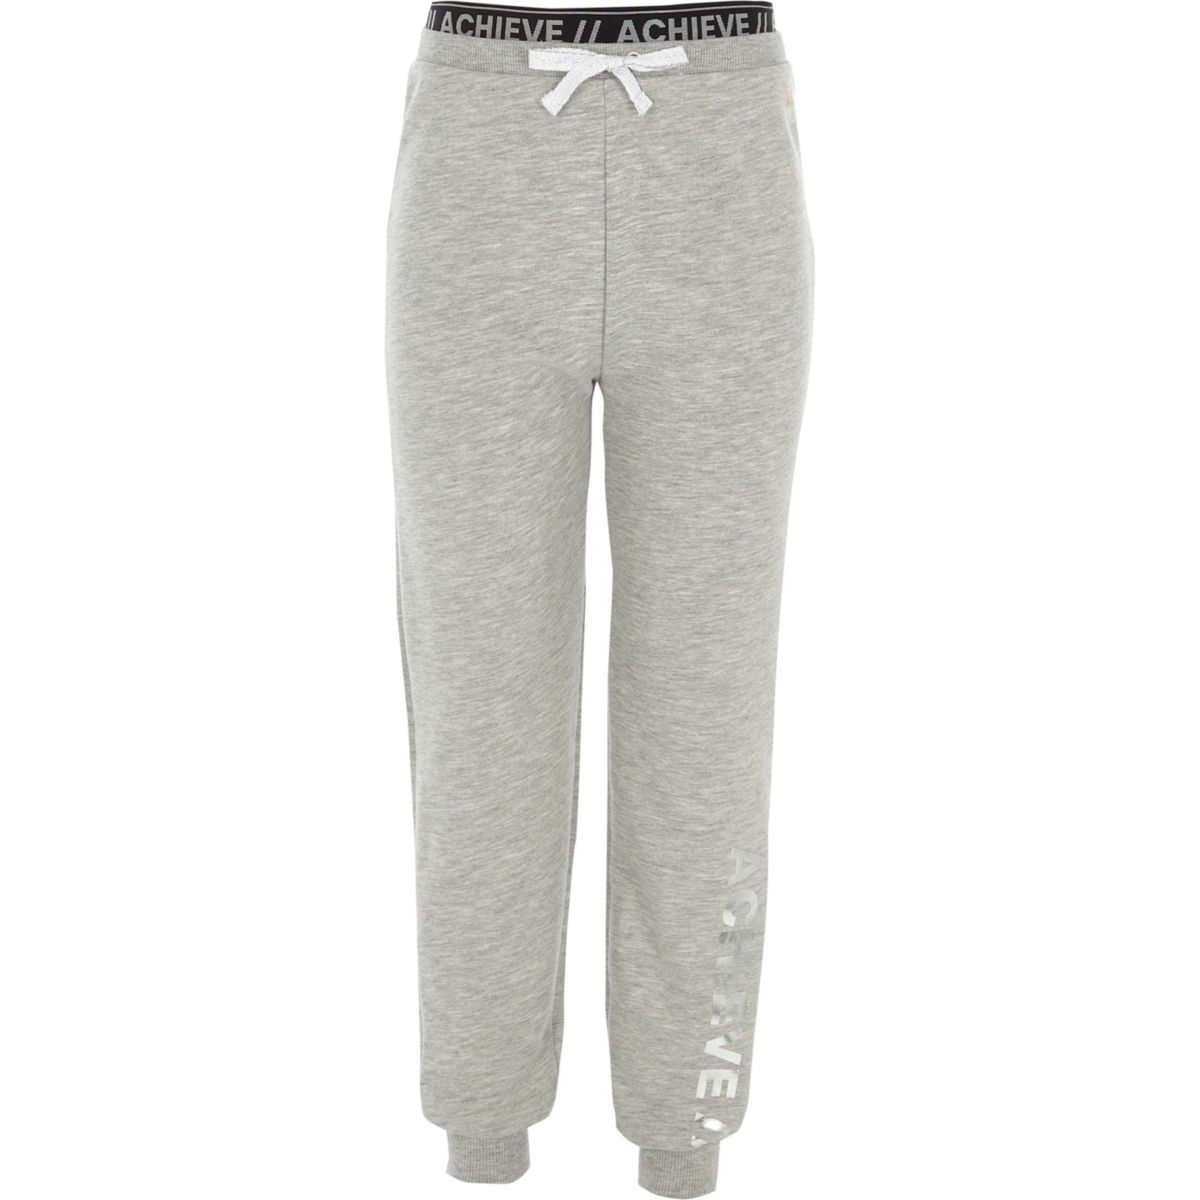 Girls RI Active grey 'achieve' joggers